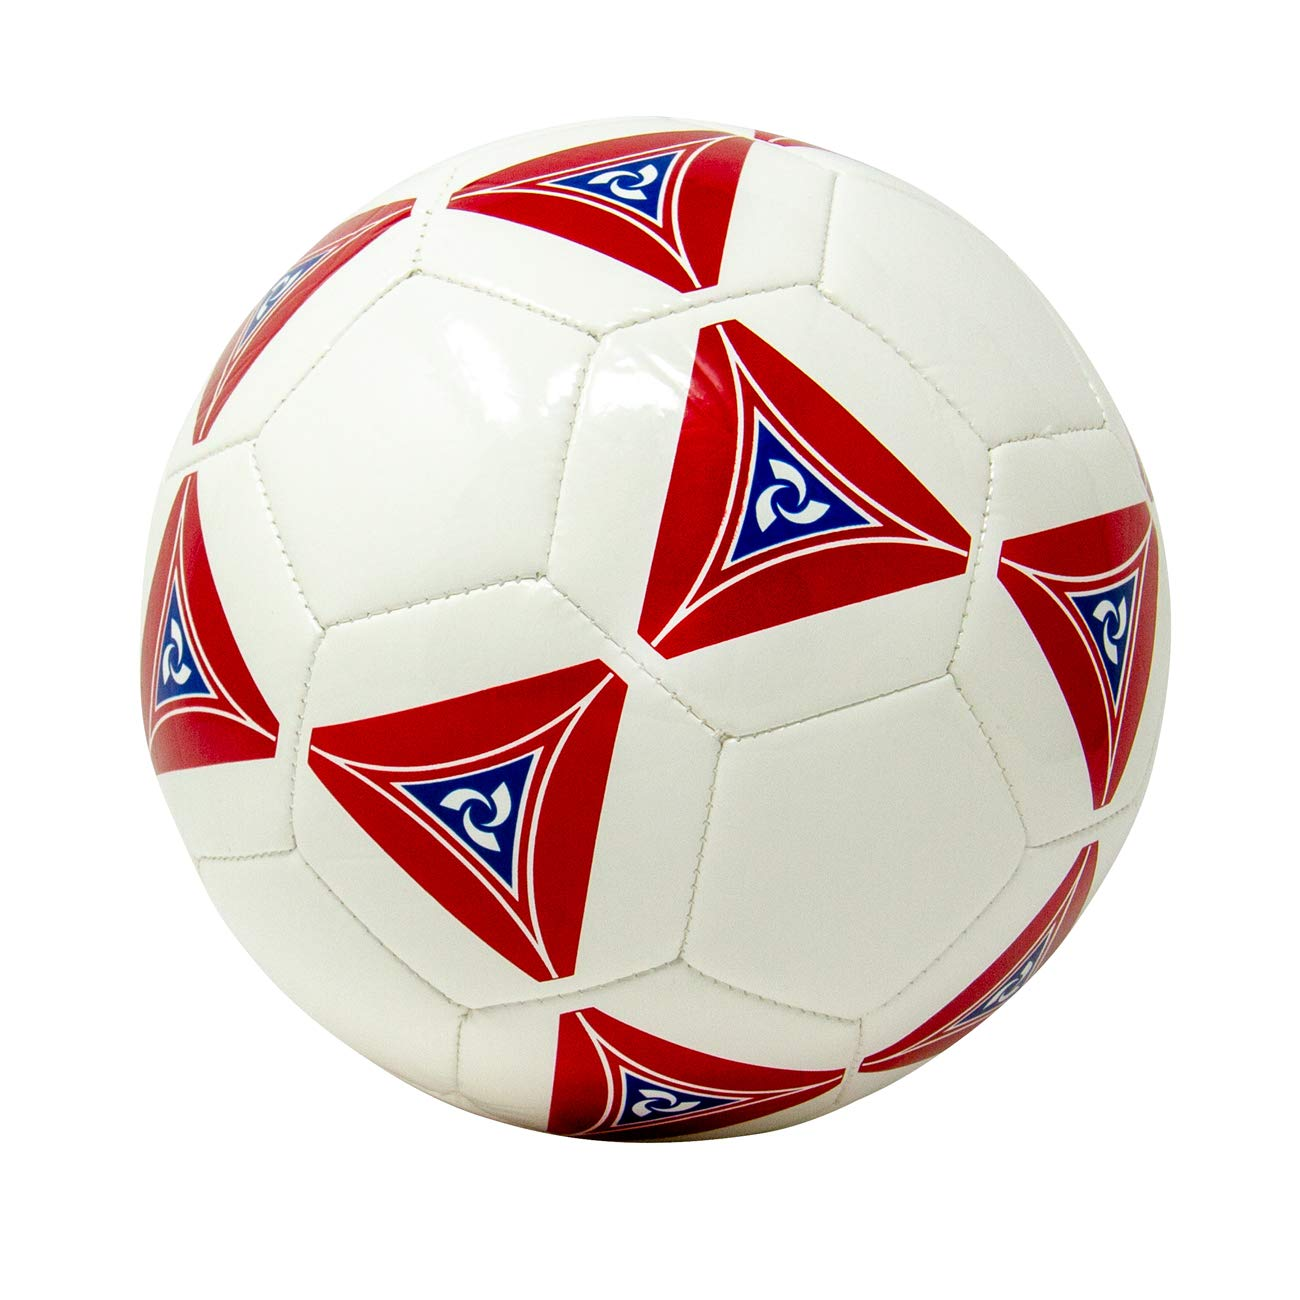 912b4adb39 Amazon.com : Mikasa Serious Soccer Ball : Sports & Outdoors